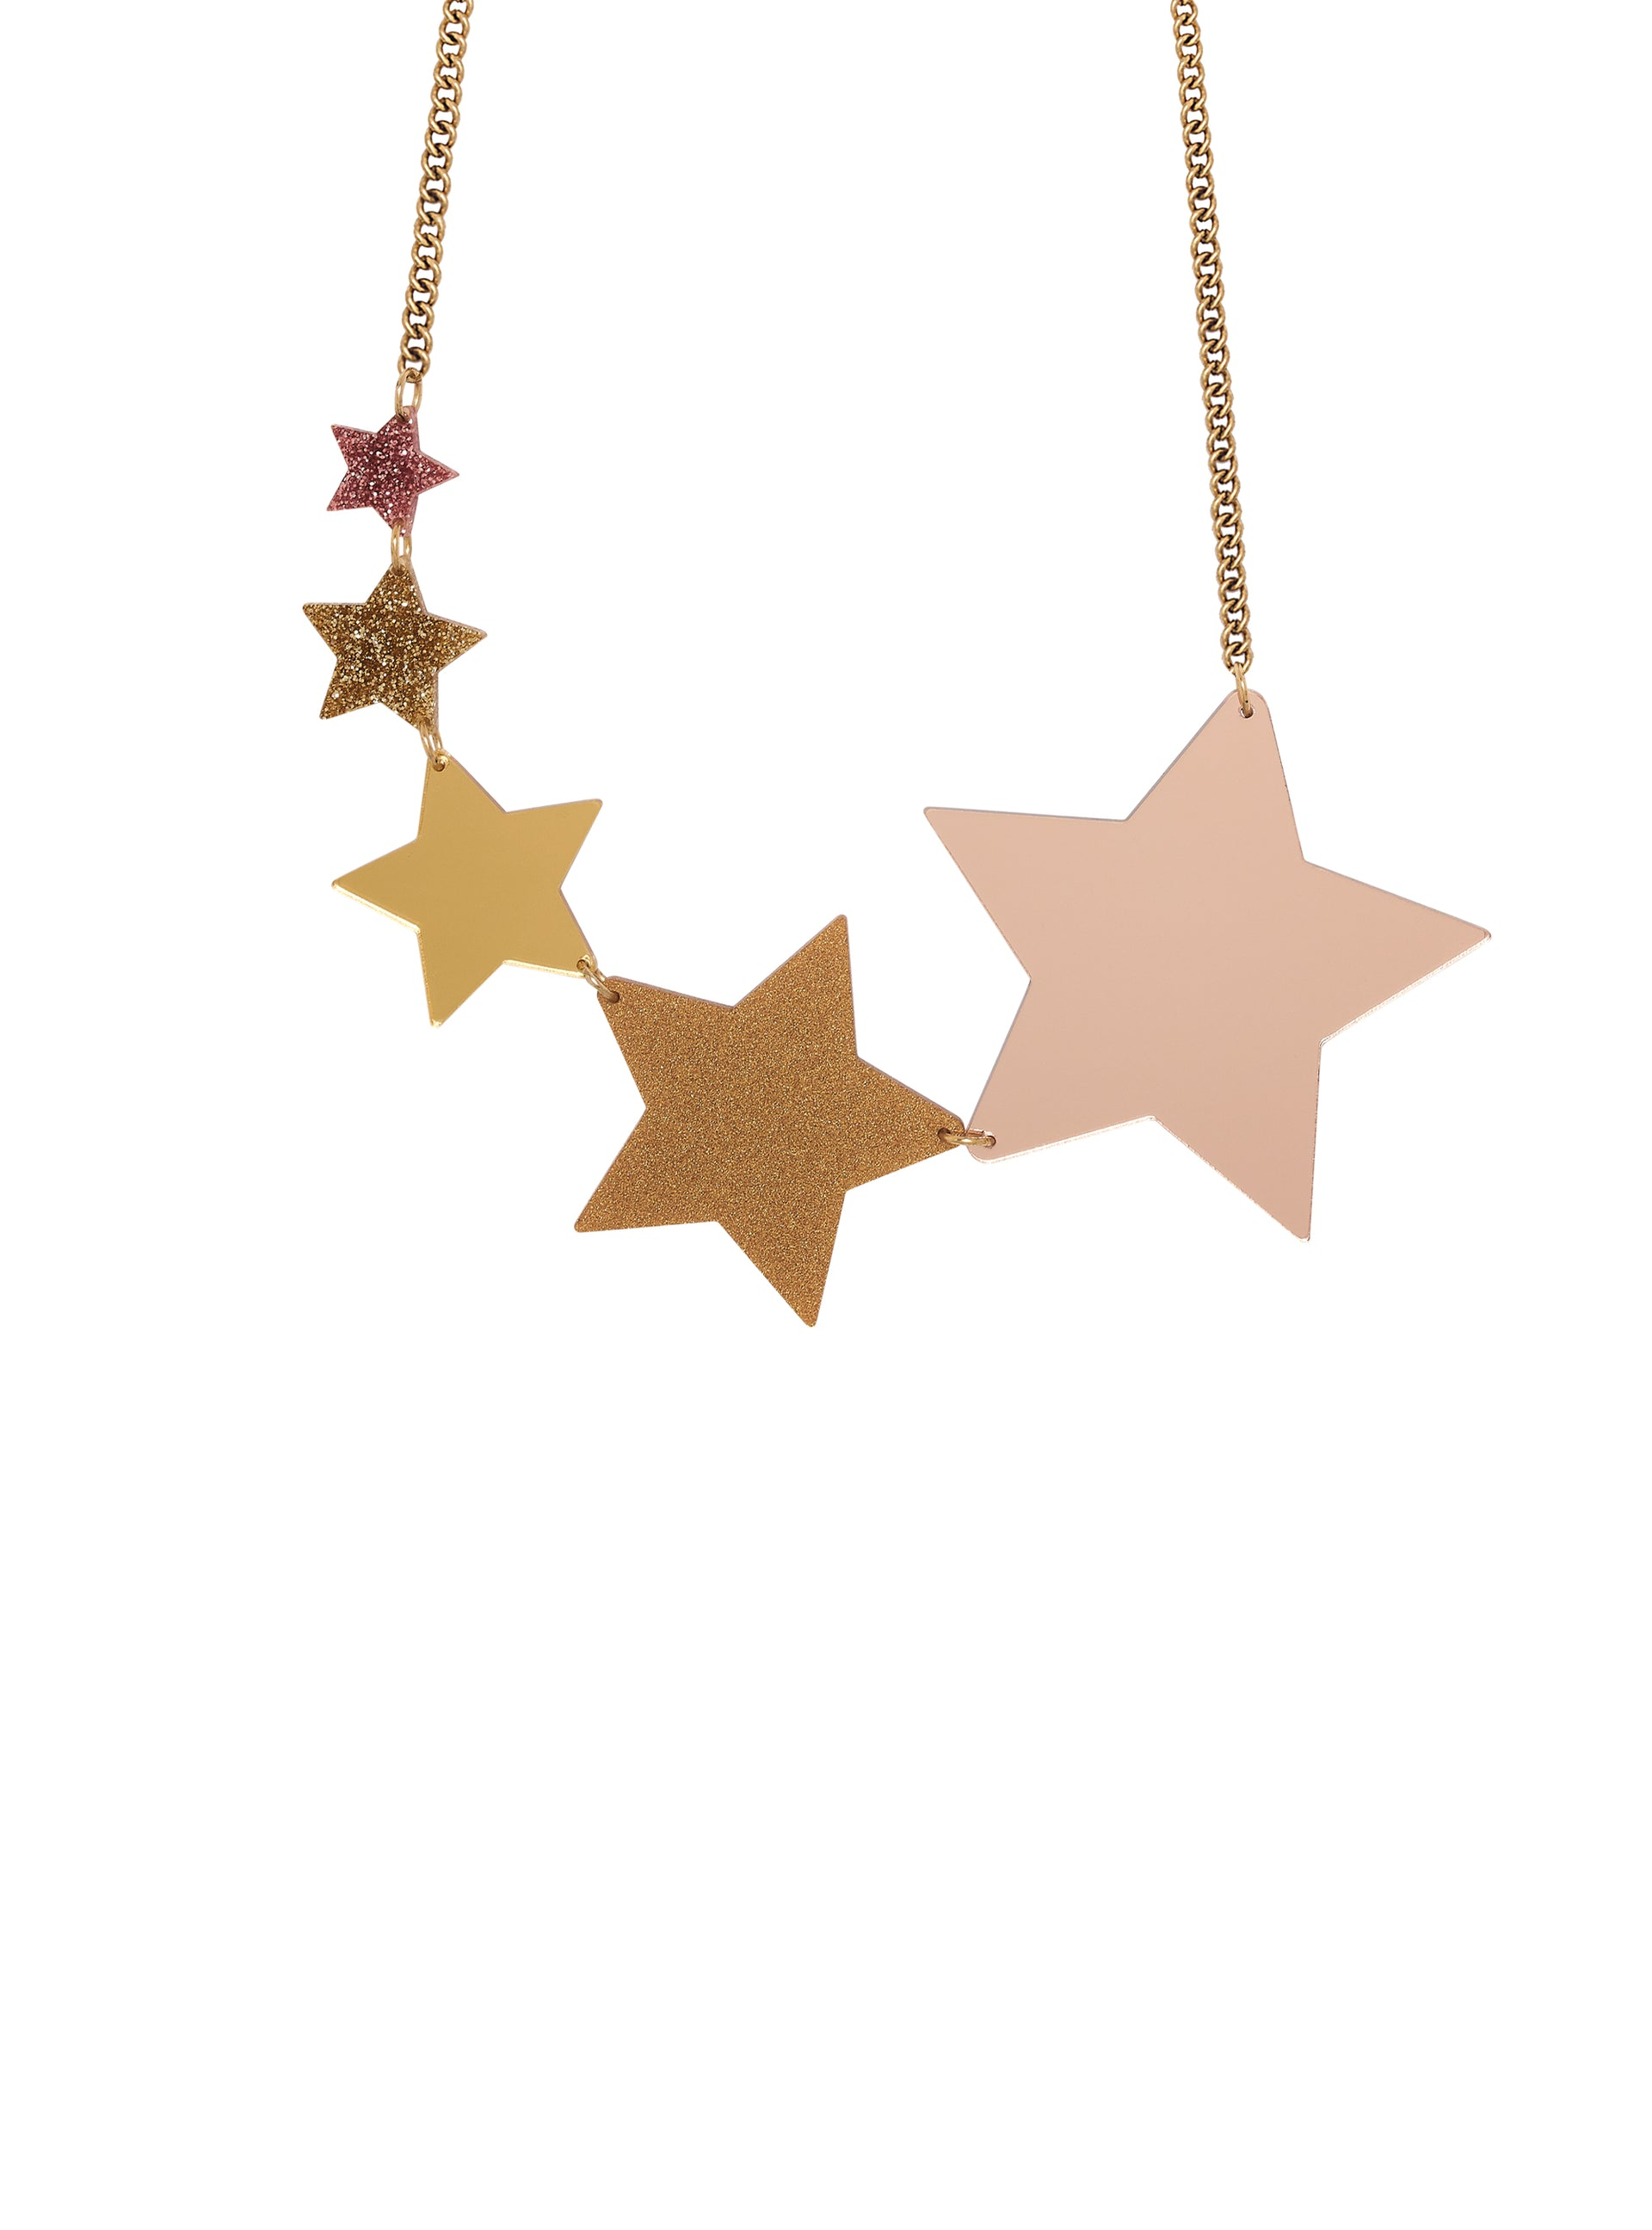 Shooting Stars Statement Necklace - Rose Gold